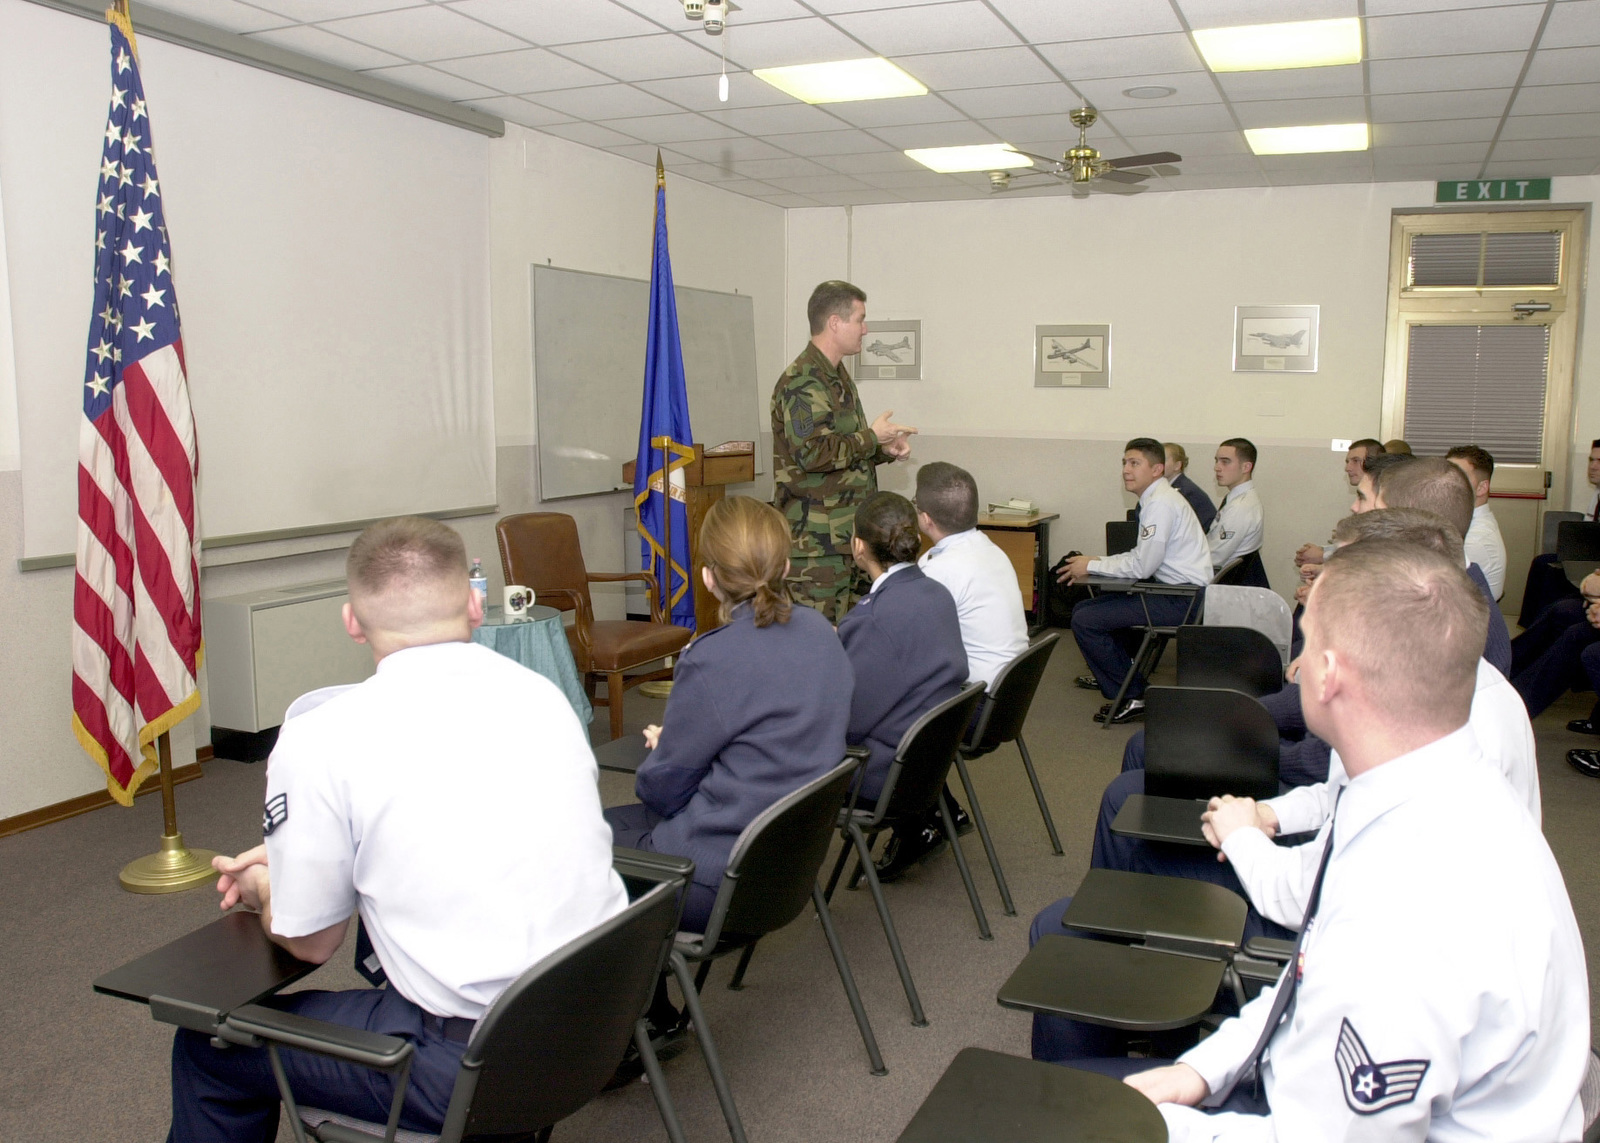 US Air Force (USAF) CHIEF MASTER Sergeant of the Air Force (CMSAF) Gerald R. Murray, counsels students of Class 03 Charlie, AIRMAN Leadership School, on the importance of Professional Military Education and their future role as supervisors. During his visit, CMSAF Murray received an orientation briefing on the mission of Aviano Air Base and followed on with discussions of issues important to enlisted personnel